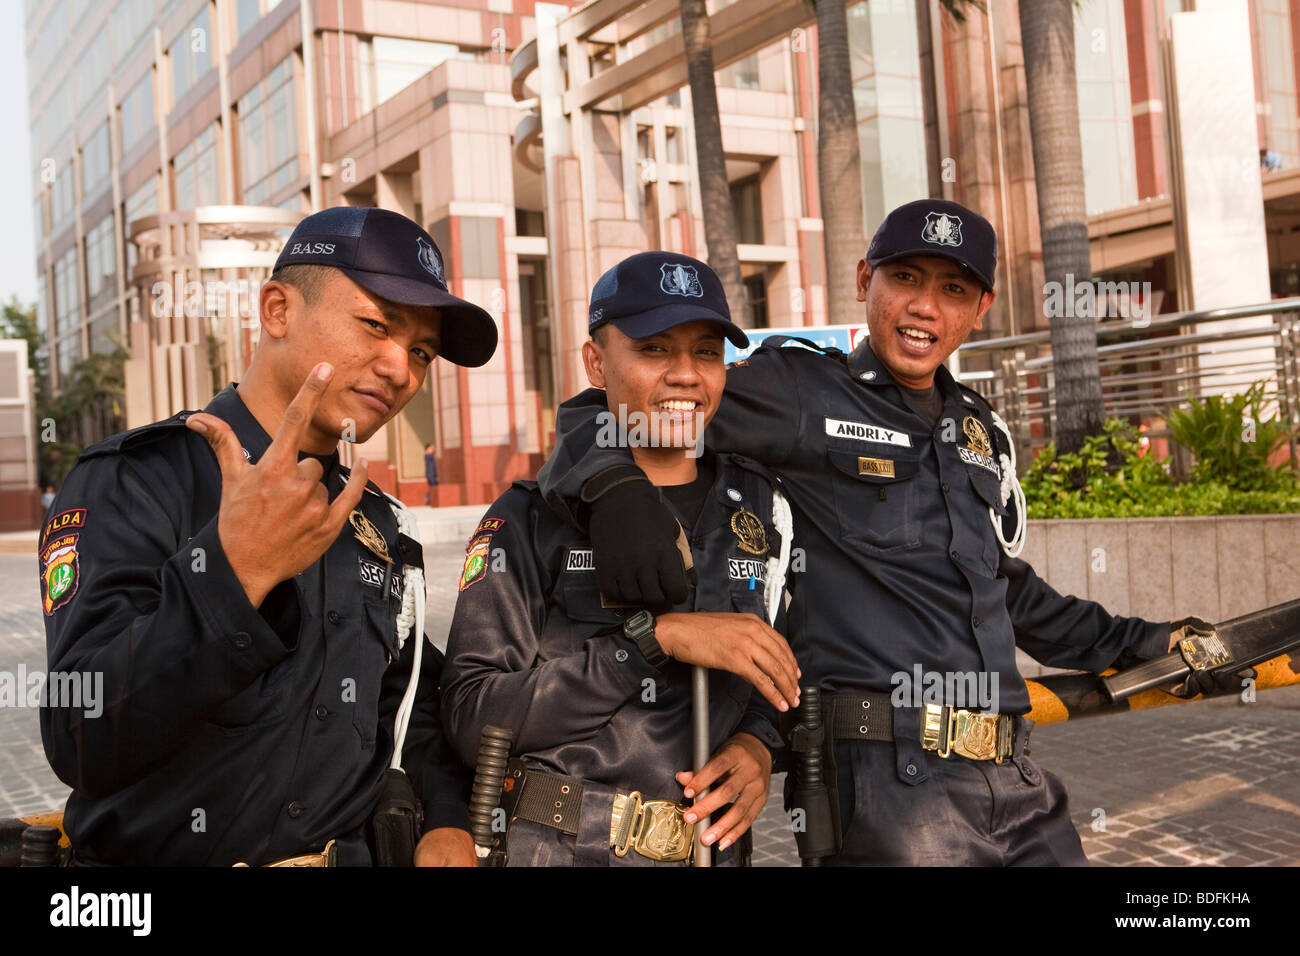 Indonesia, Java, Jakarta, Jalan Thamrin, Plaza Bll Menara office complex, security guards after 2009 terrorist bombing - Stock Image